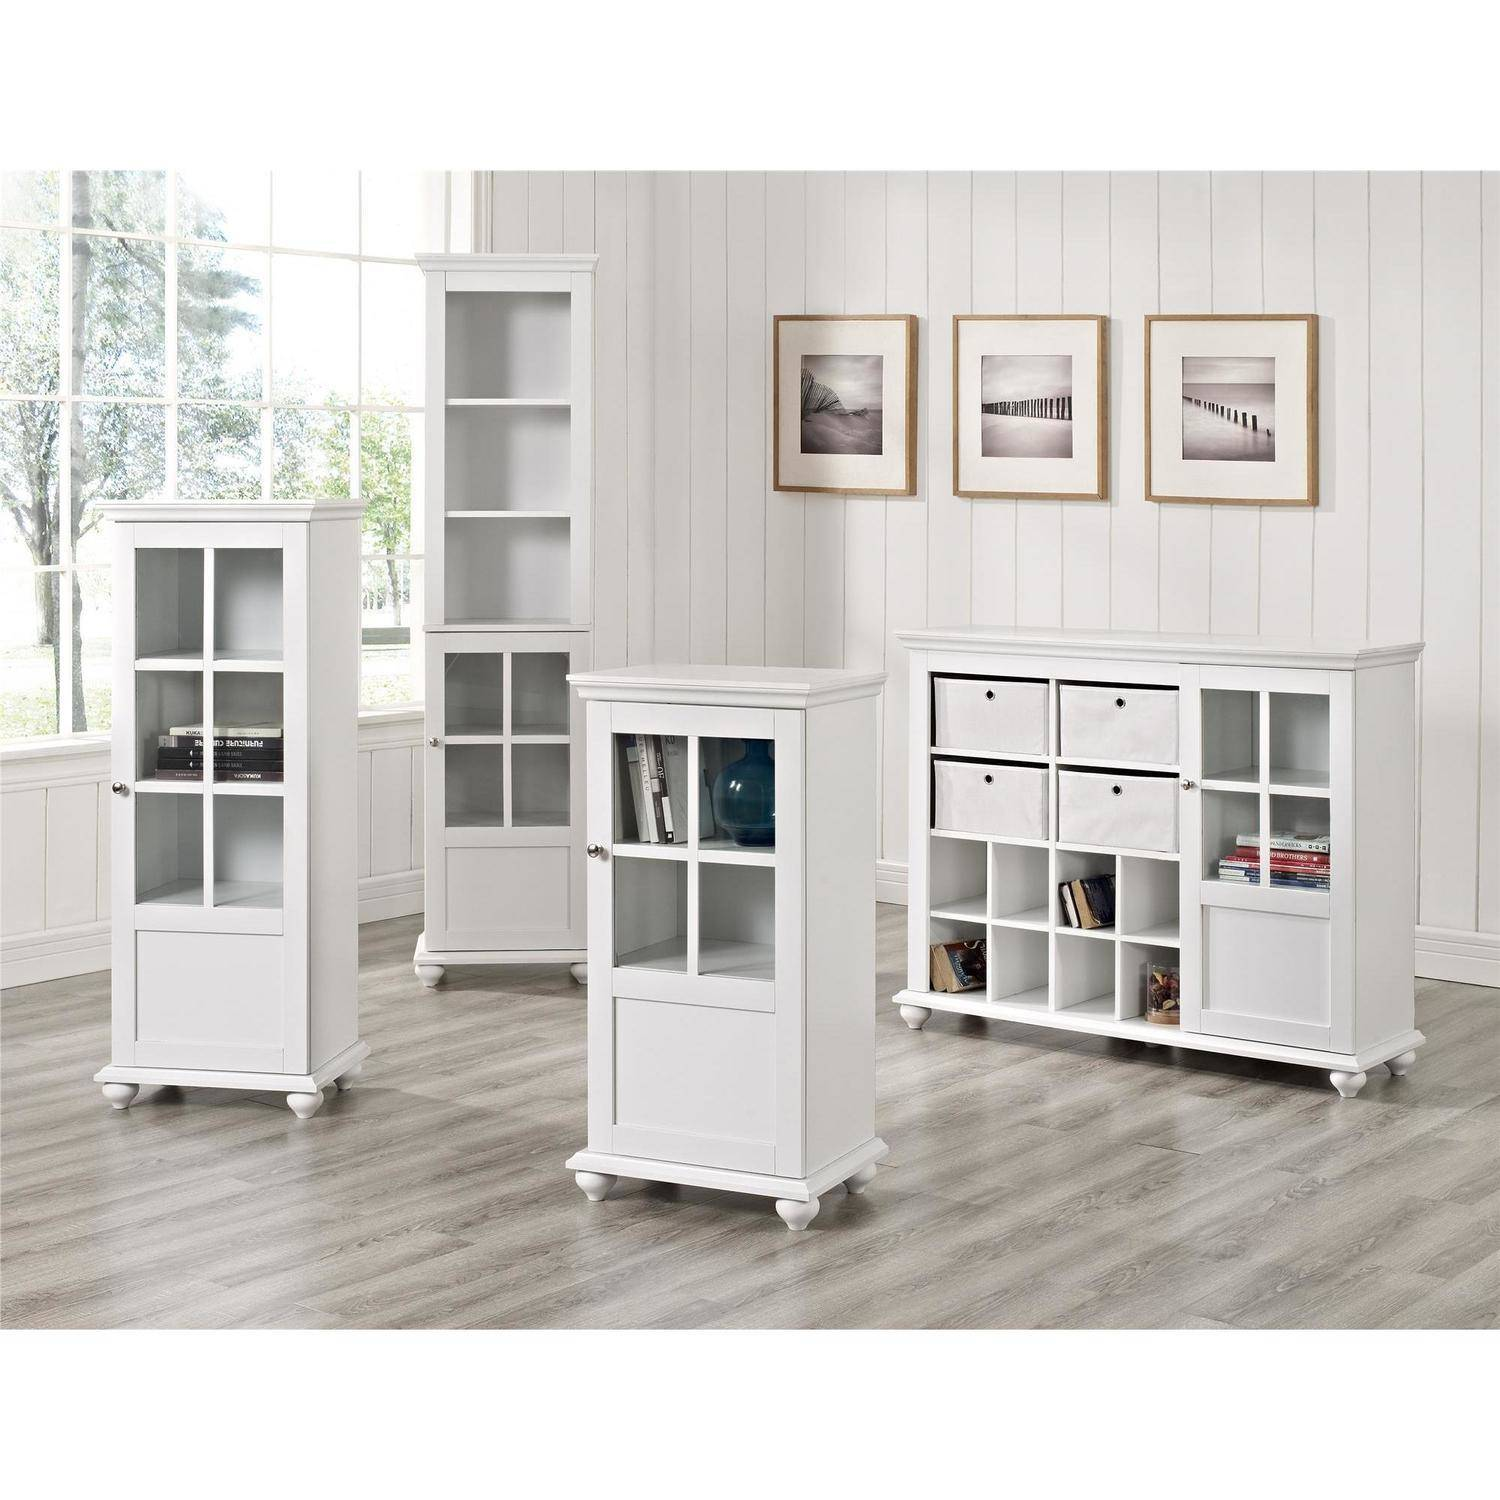 altra furniture reese park storage cabinet with 4 fabric bins and glass door white - Cabinet With Glass Doors